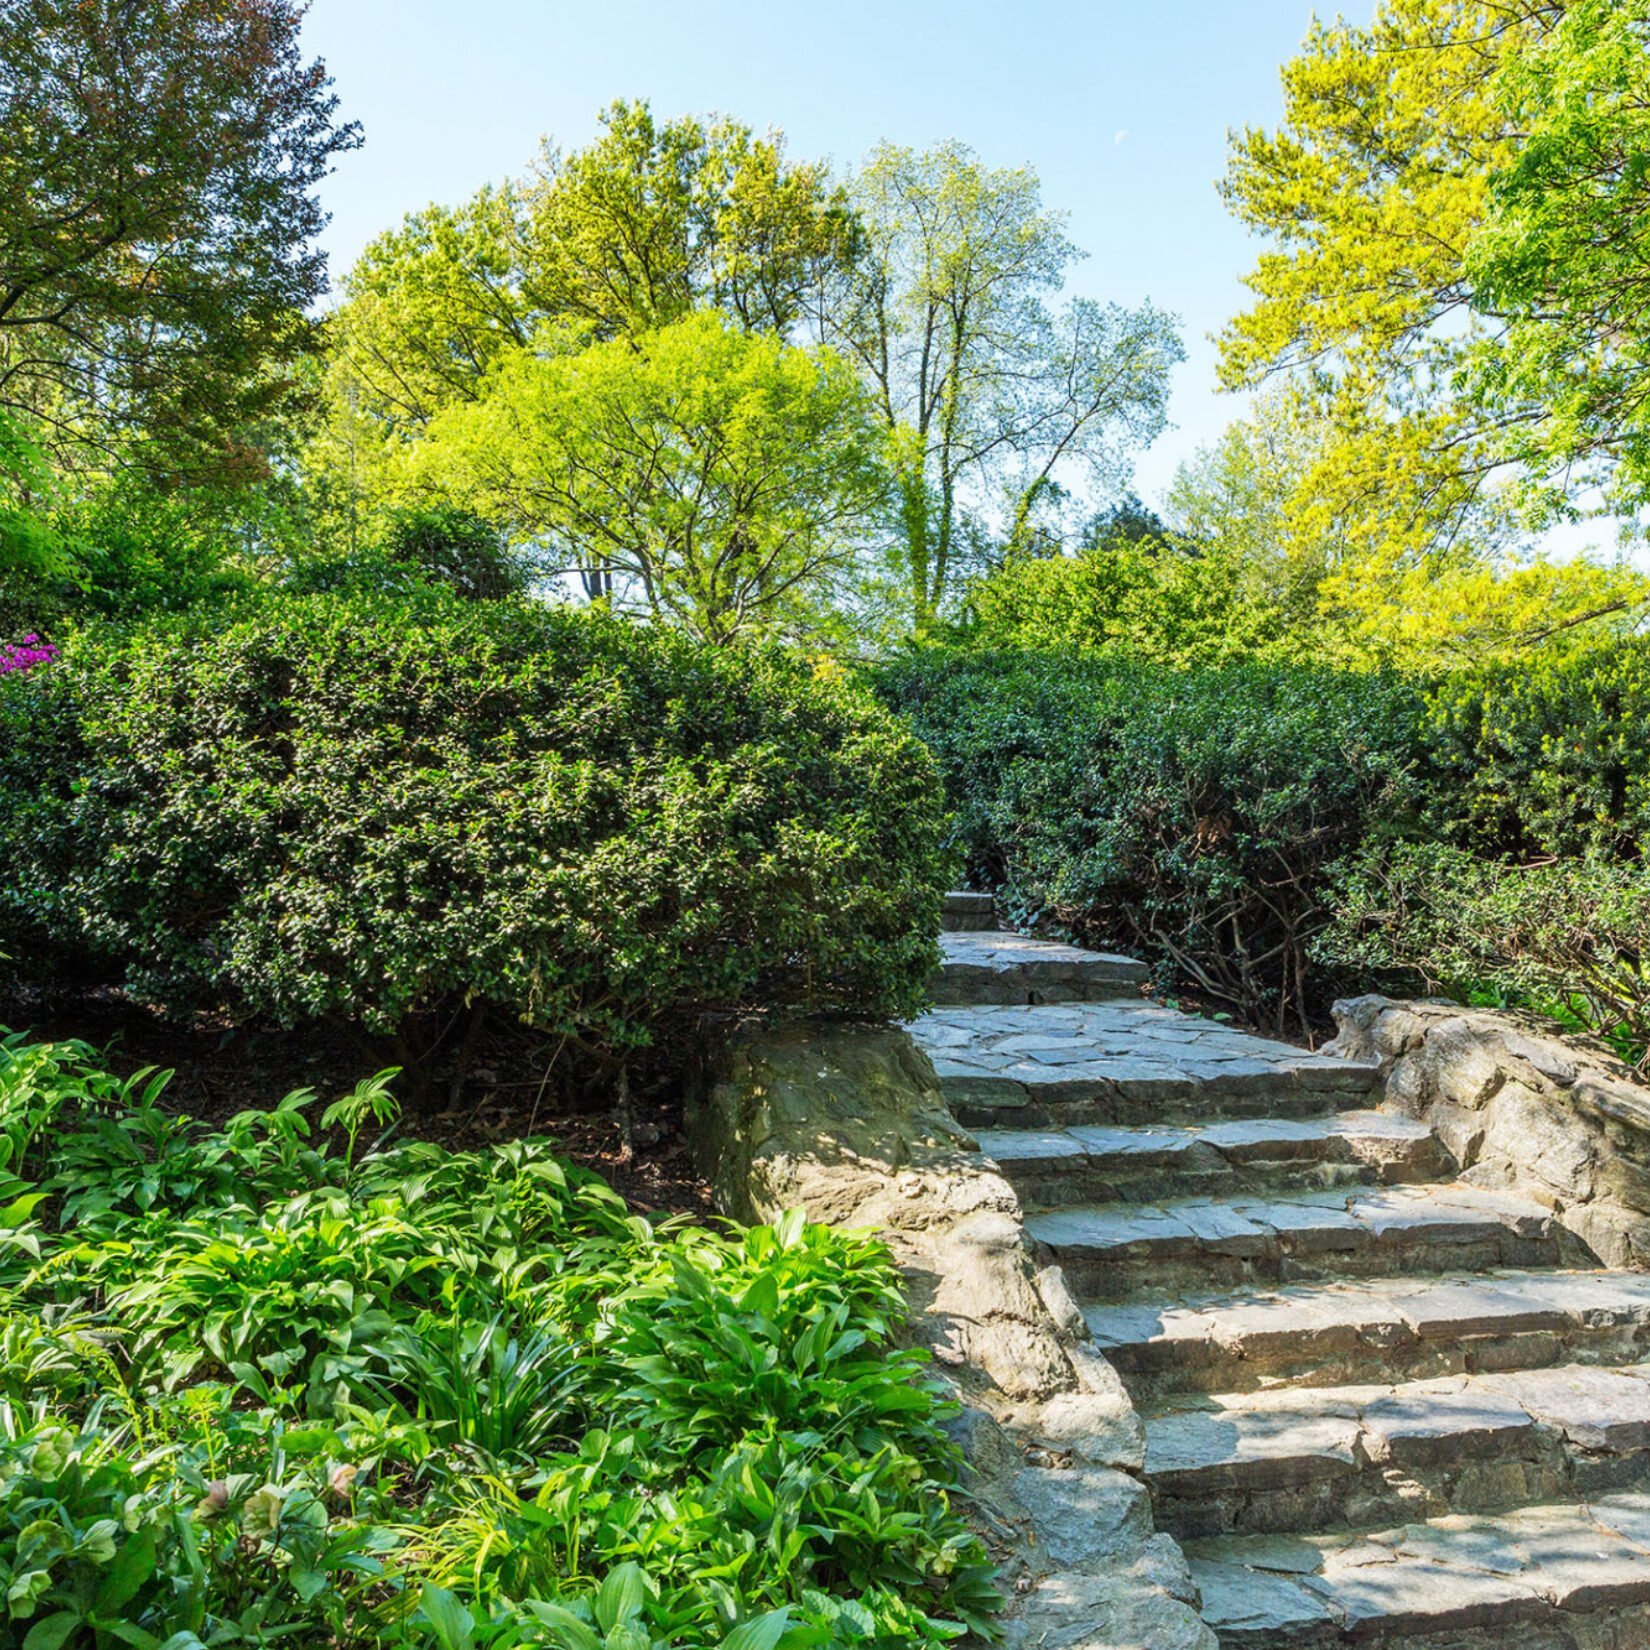 The stone steps of Shakespeare Garden, lined by pruned shrubbery and flowers